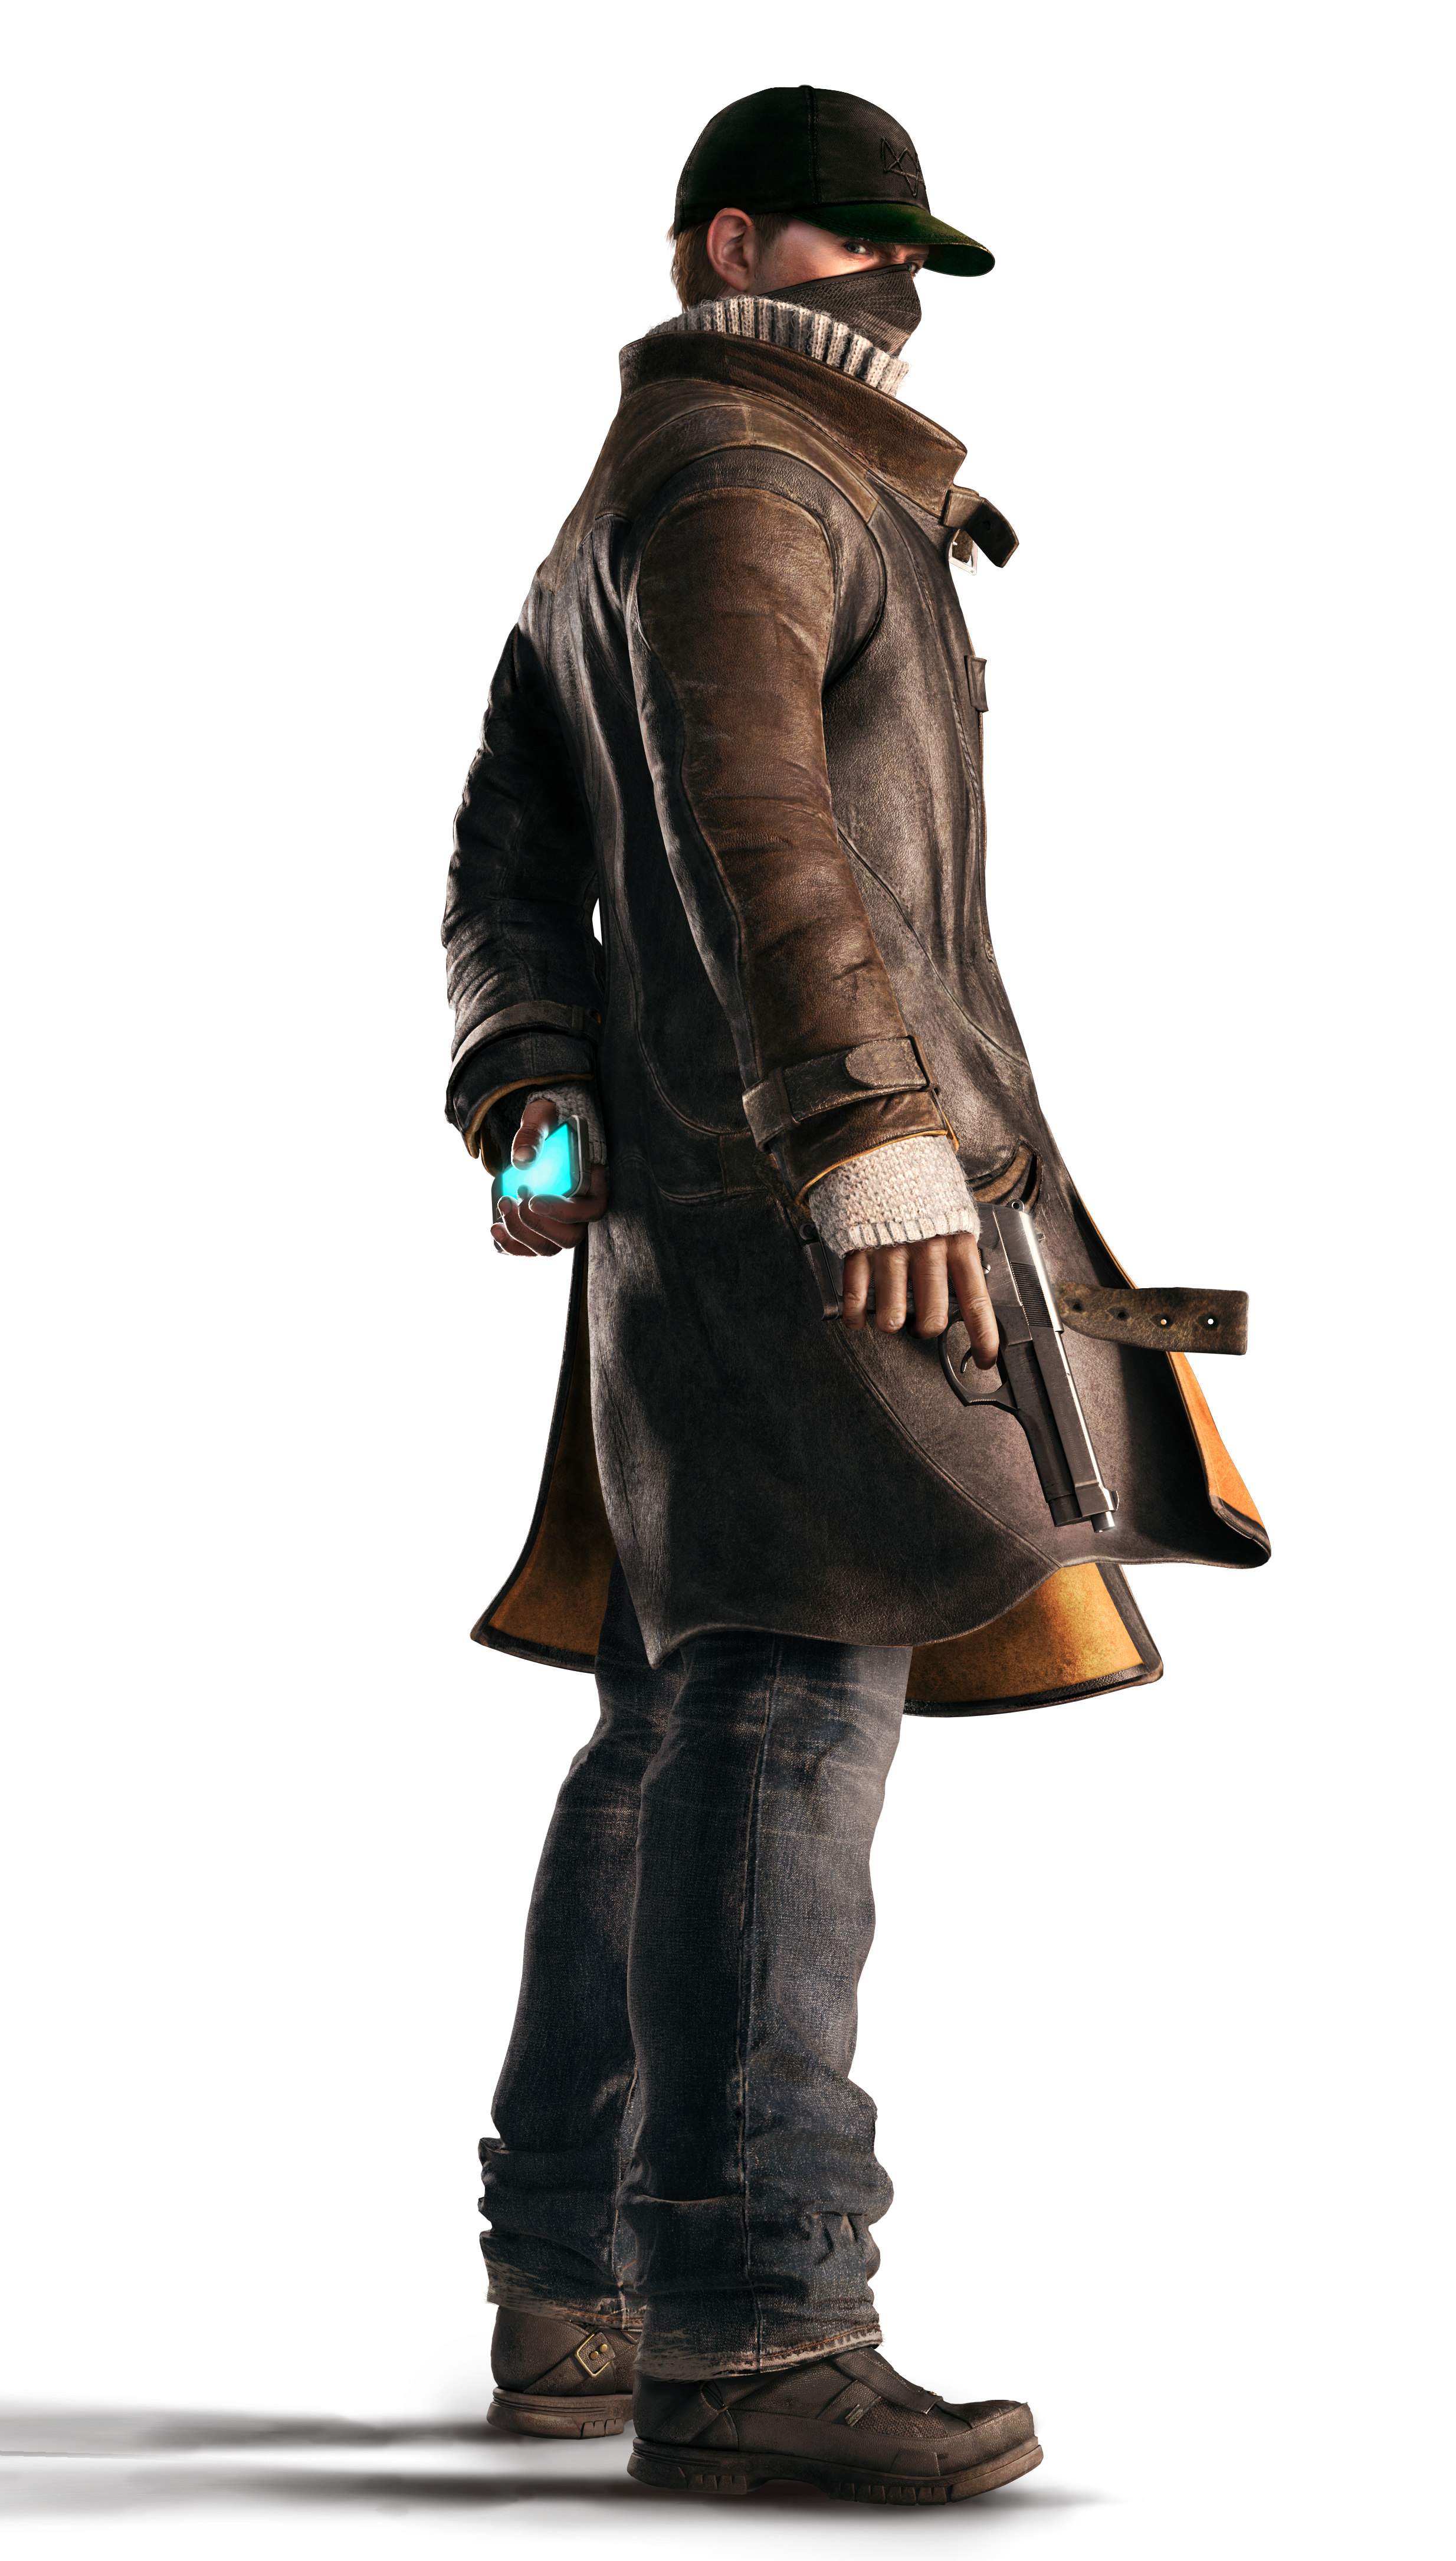 Hdpng - Watch Dogs, Transparent background PNG HD thumbnail